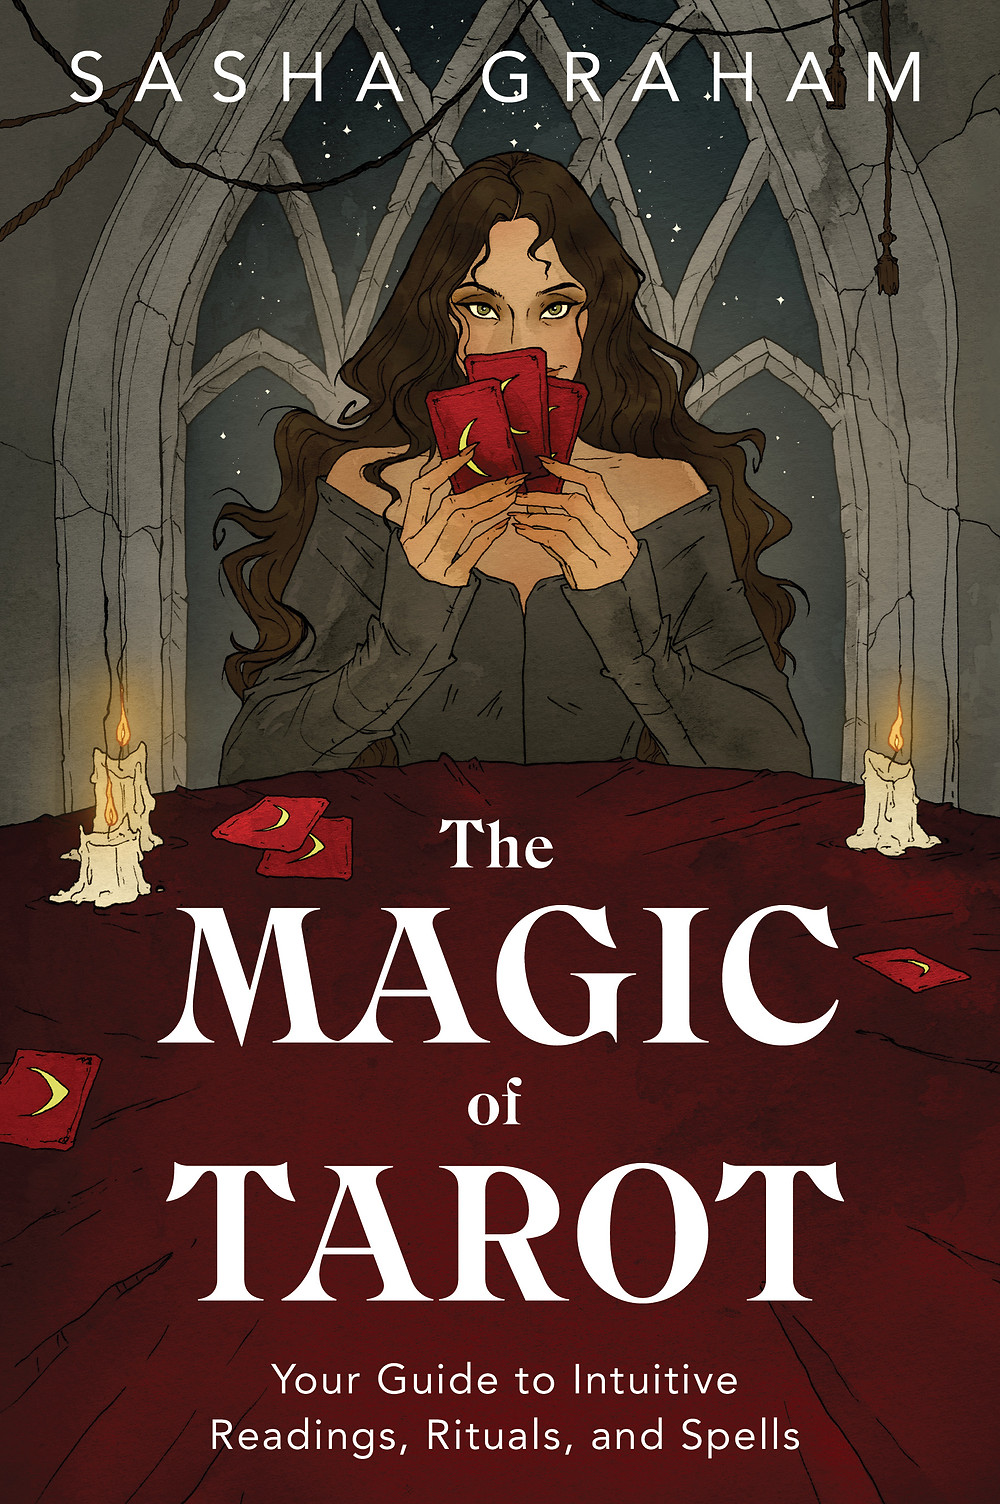 Empower your intuition, dive into your dreams, and get to the heart of the matter with this fantastic guide to creating a marvelous, magical tarot practice. Bestselling author and tarot expert Sasha Graham shows you how to bring tarot into daily life with easy-to-use exercises, spreads, and prompts.